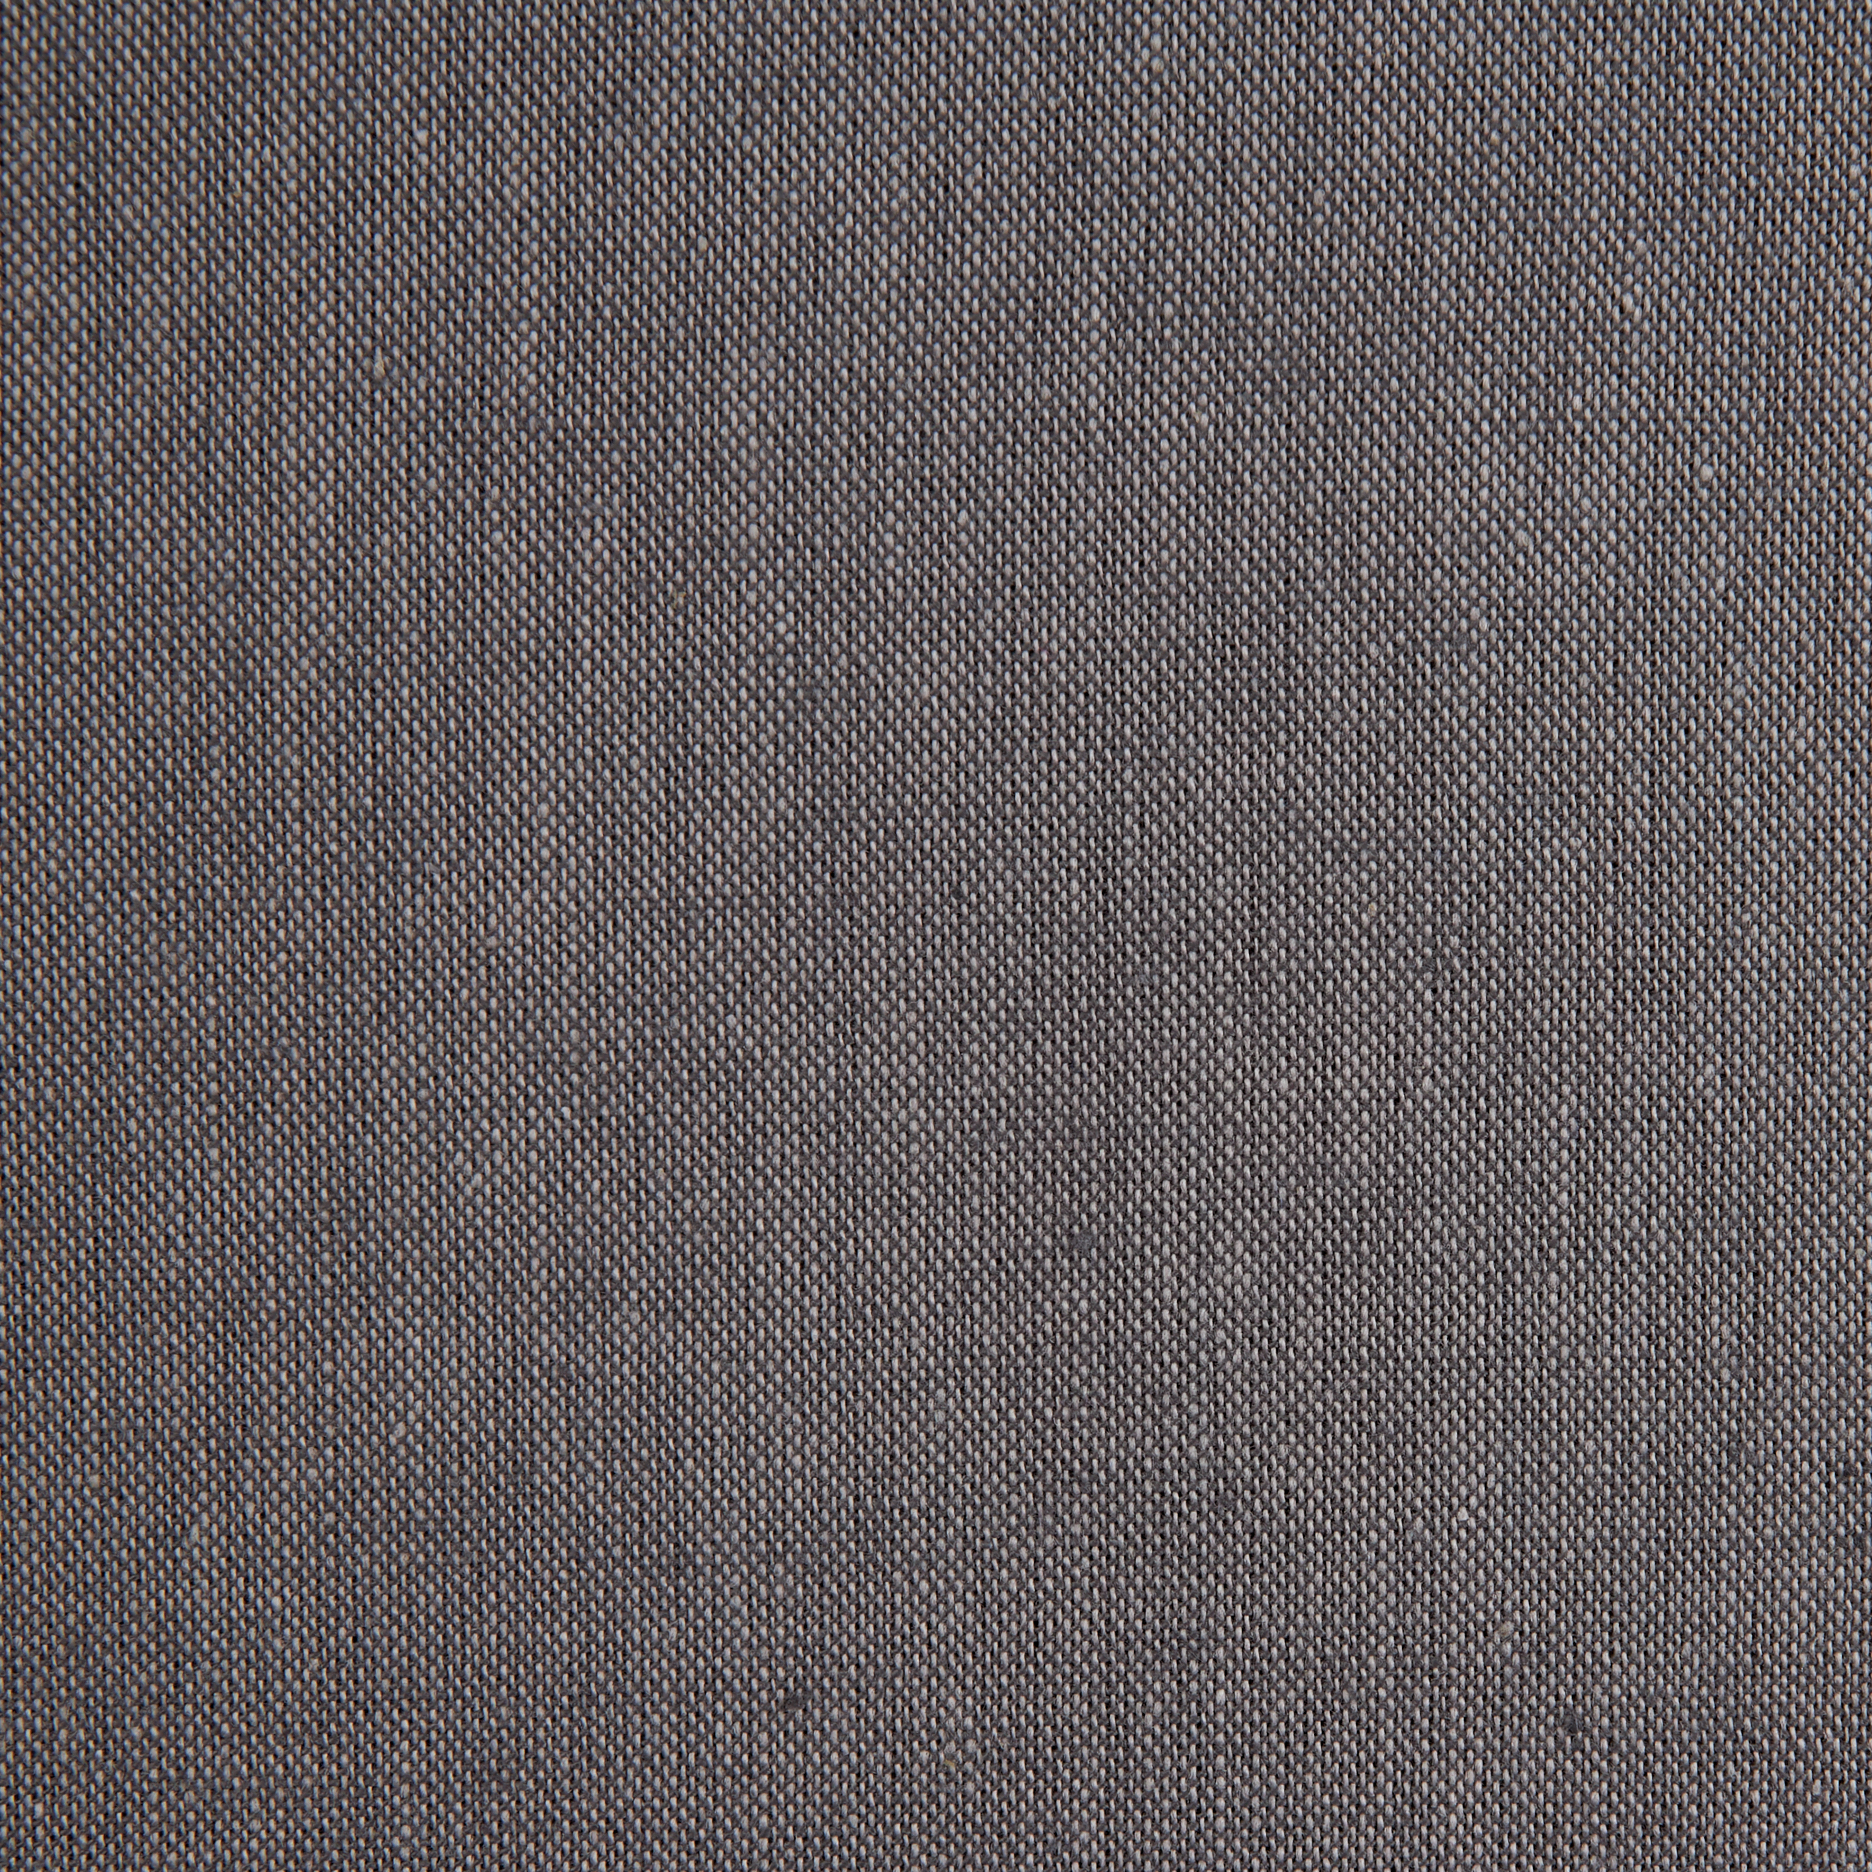 Cloud 9 Organic Cirrus Solid Broadcloth Shadow Fabric by Cloud 9 in USA